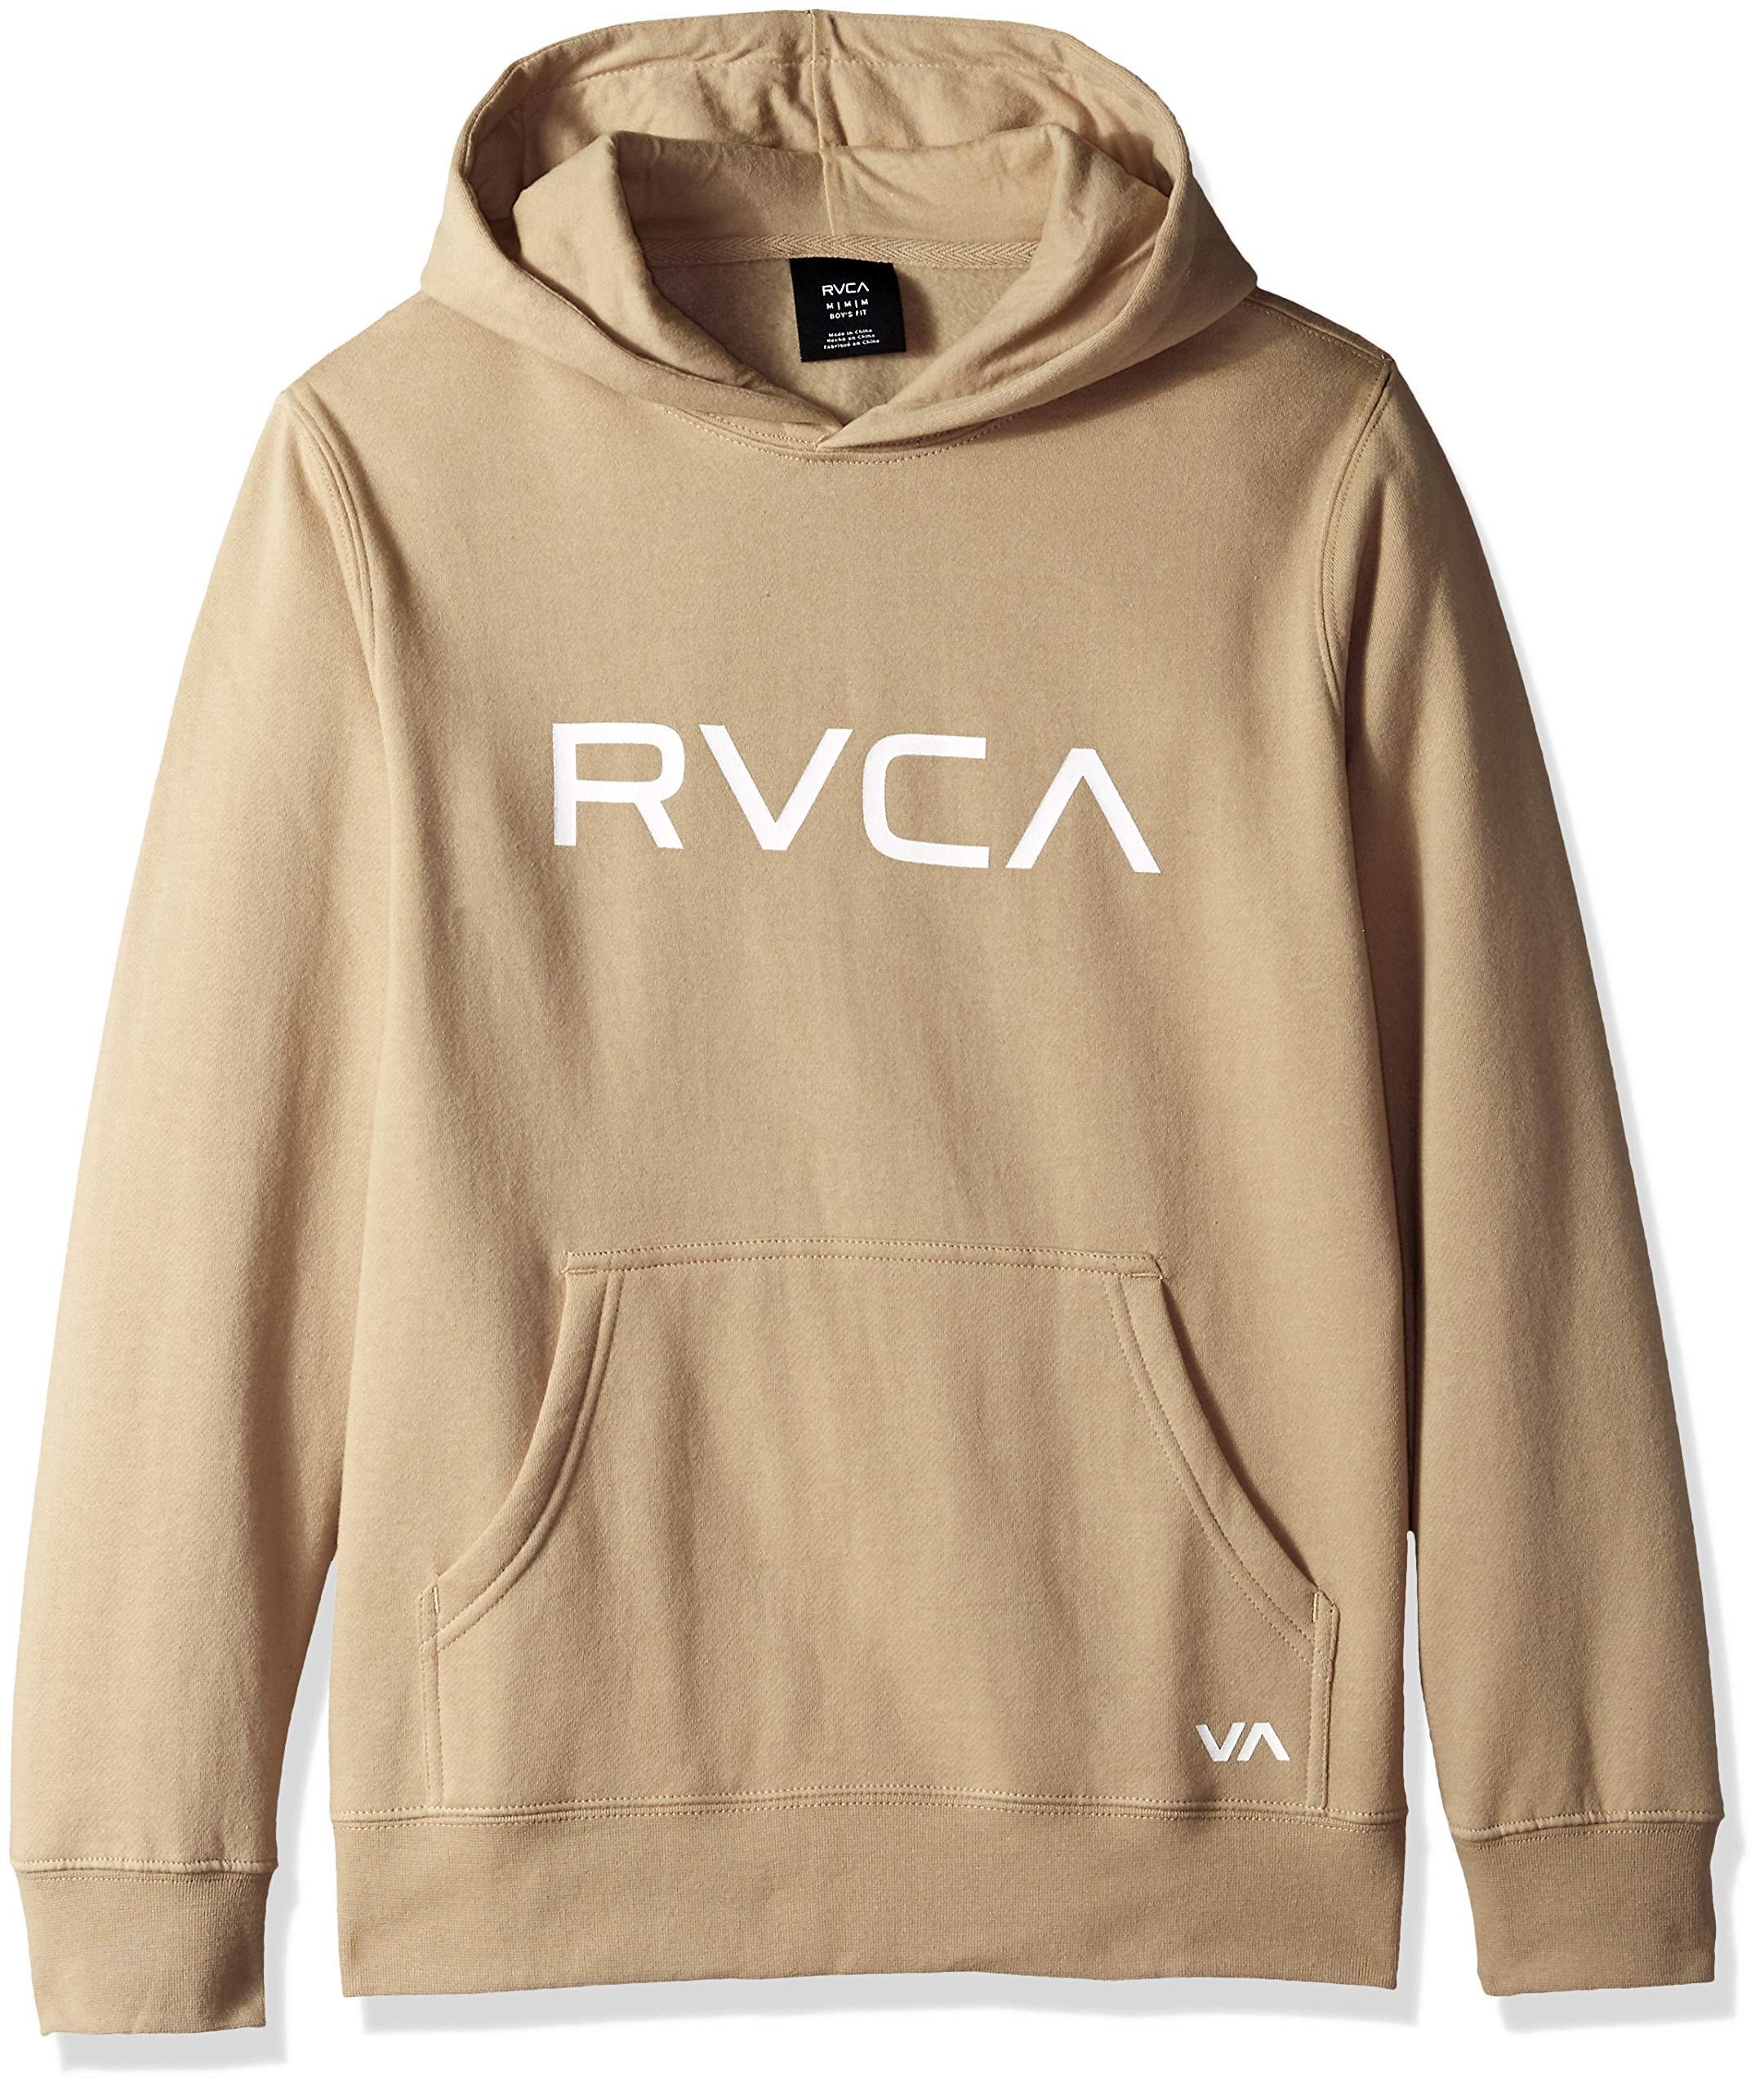 RVCA Boys Big Pullover Hooded Sweatshirt, Khaki, L